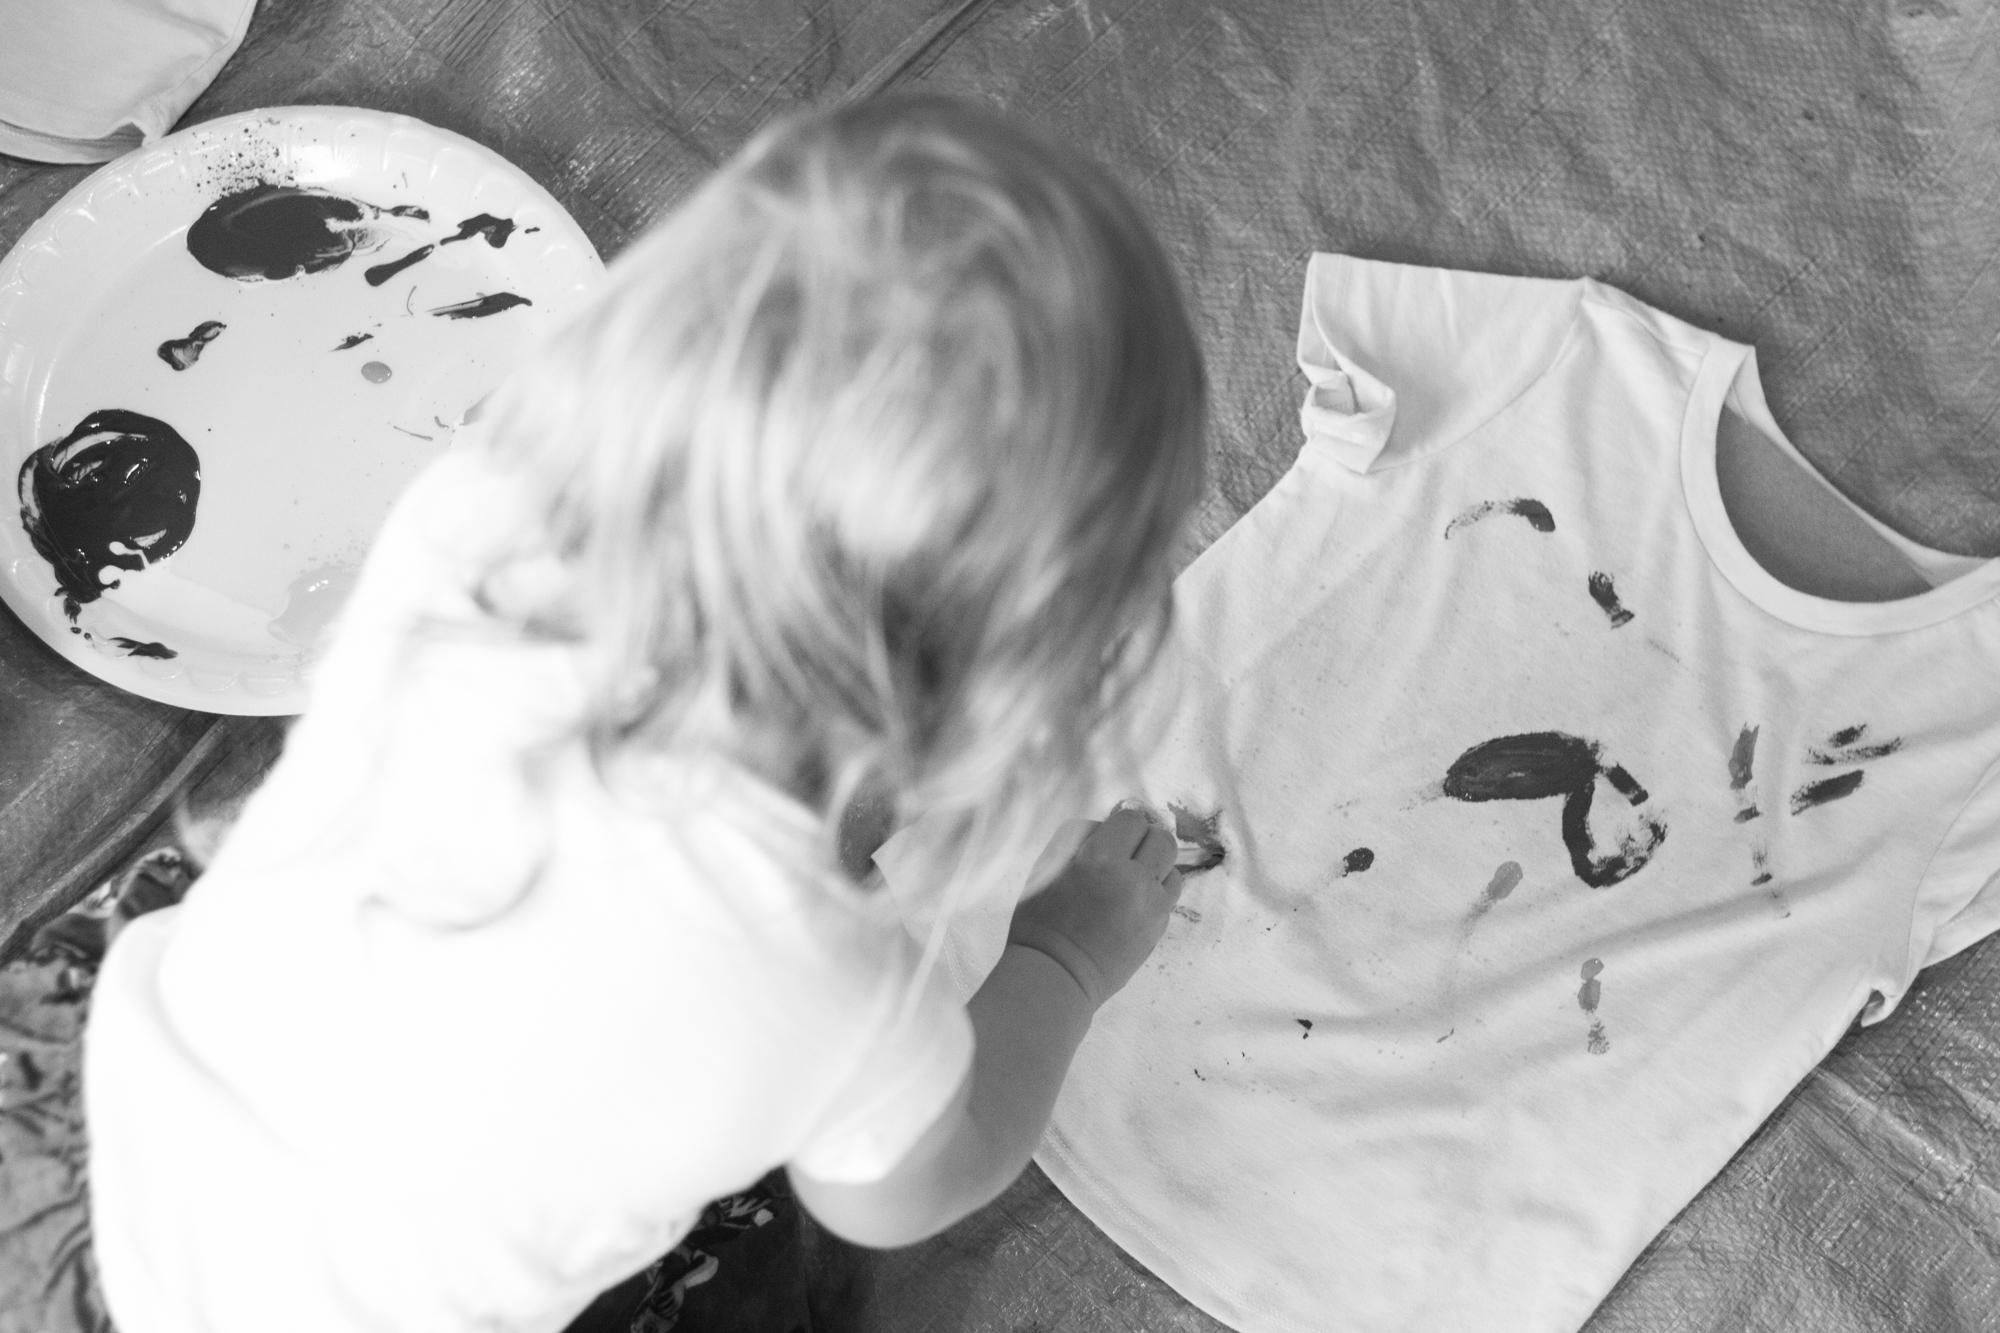 Stefanie's youngest daughter joins the apprentices in designing shirts.